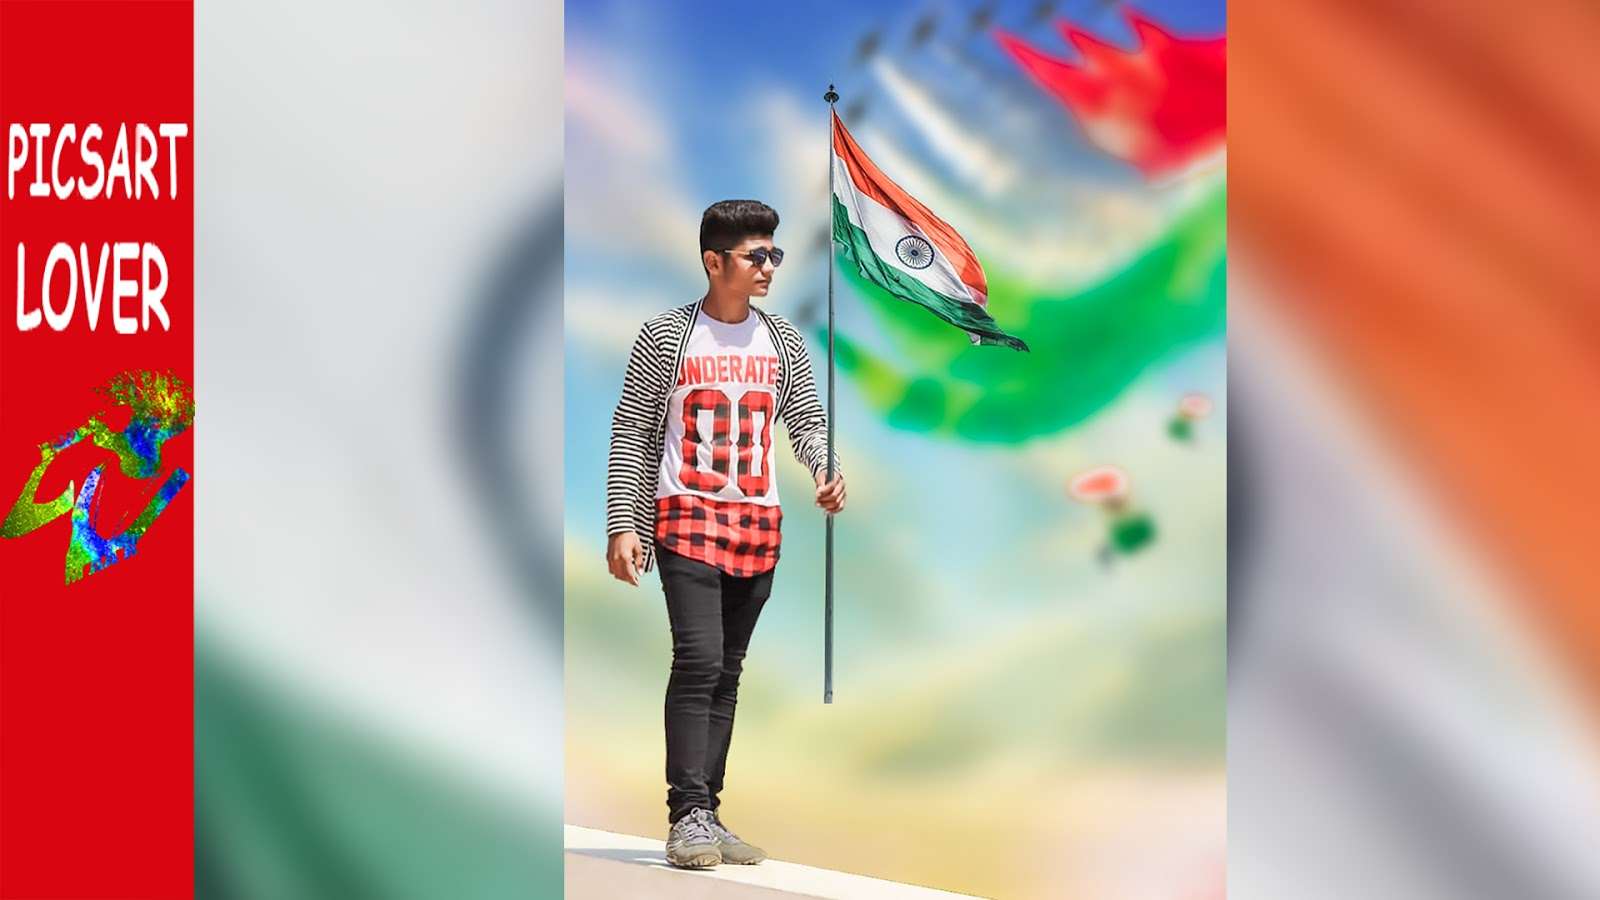 15 august independence day editing background image png download